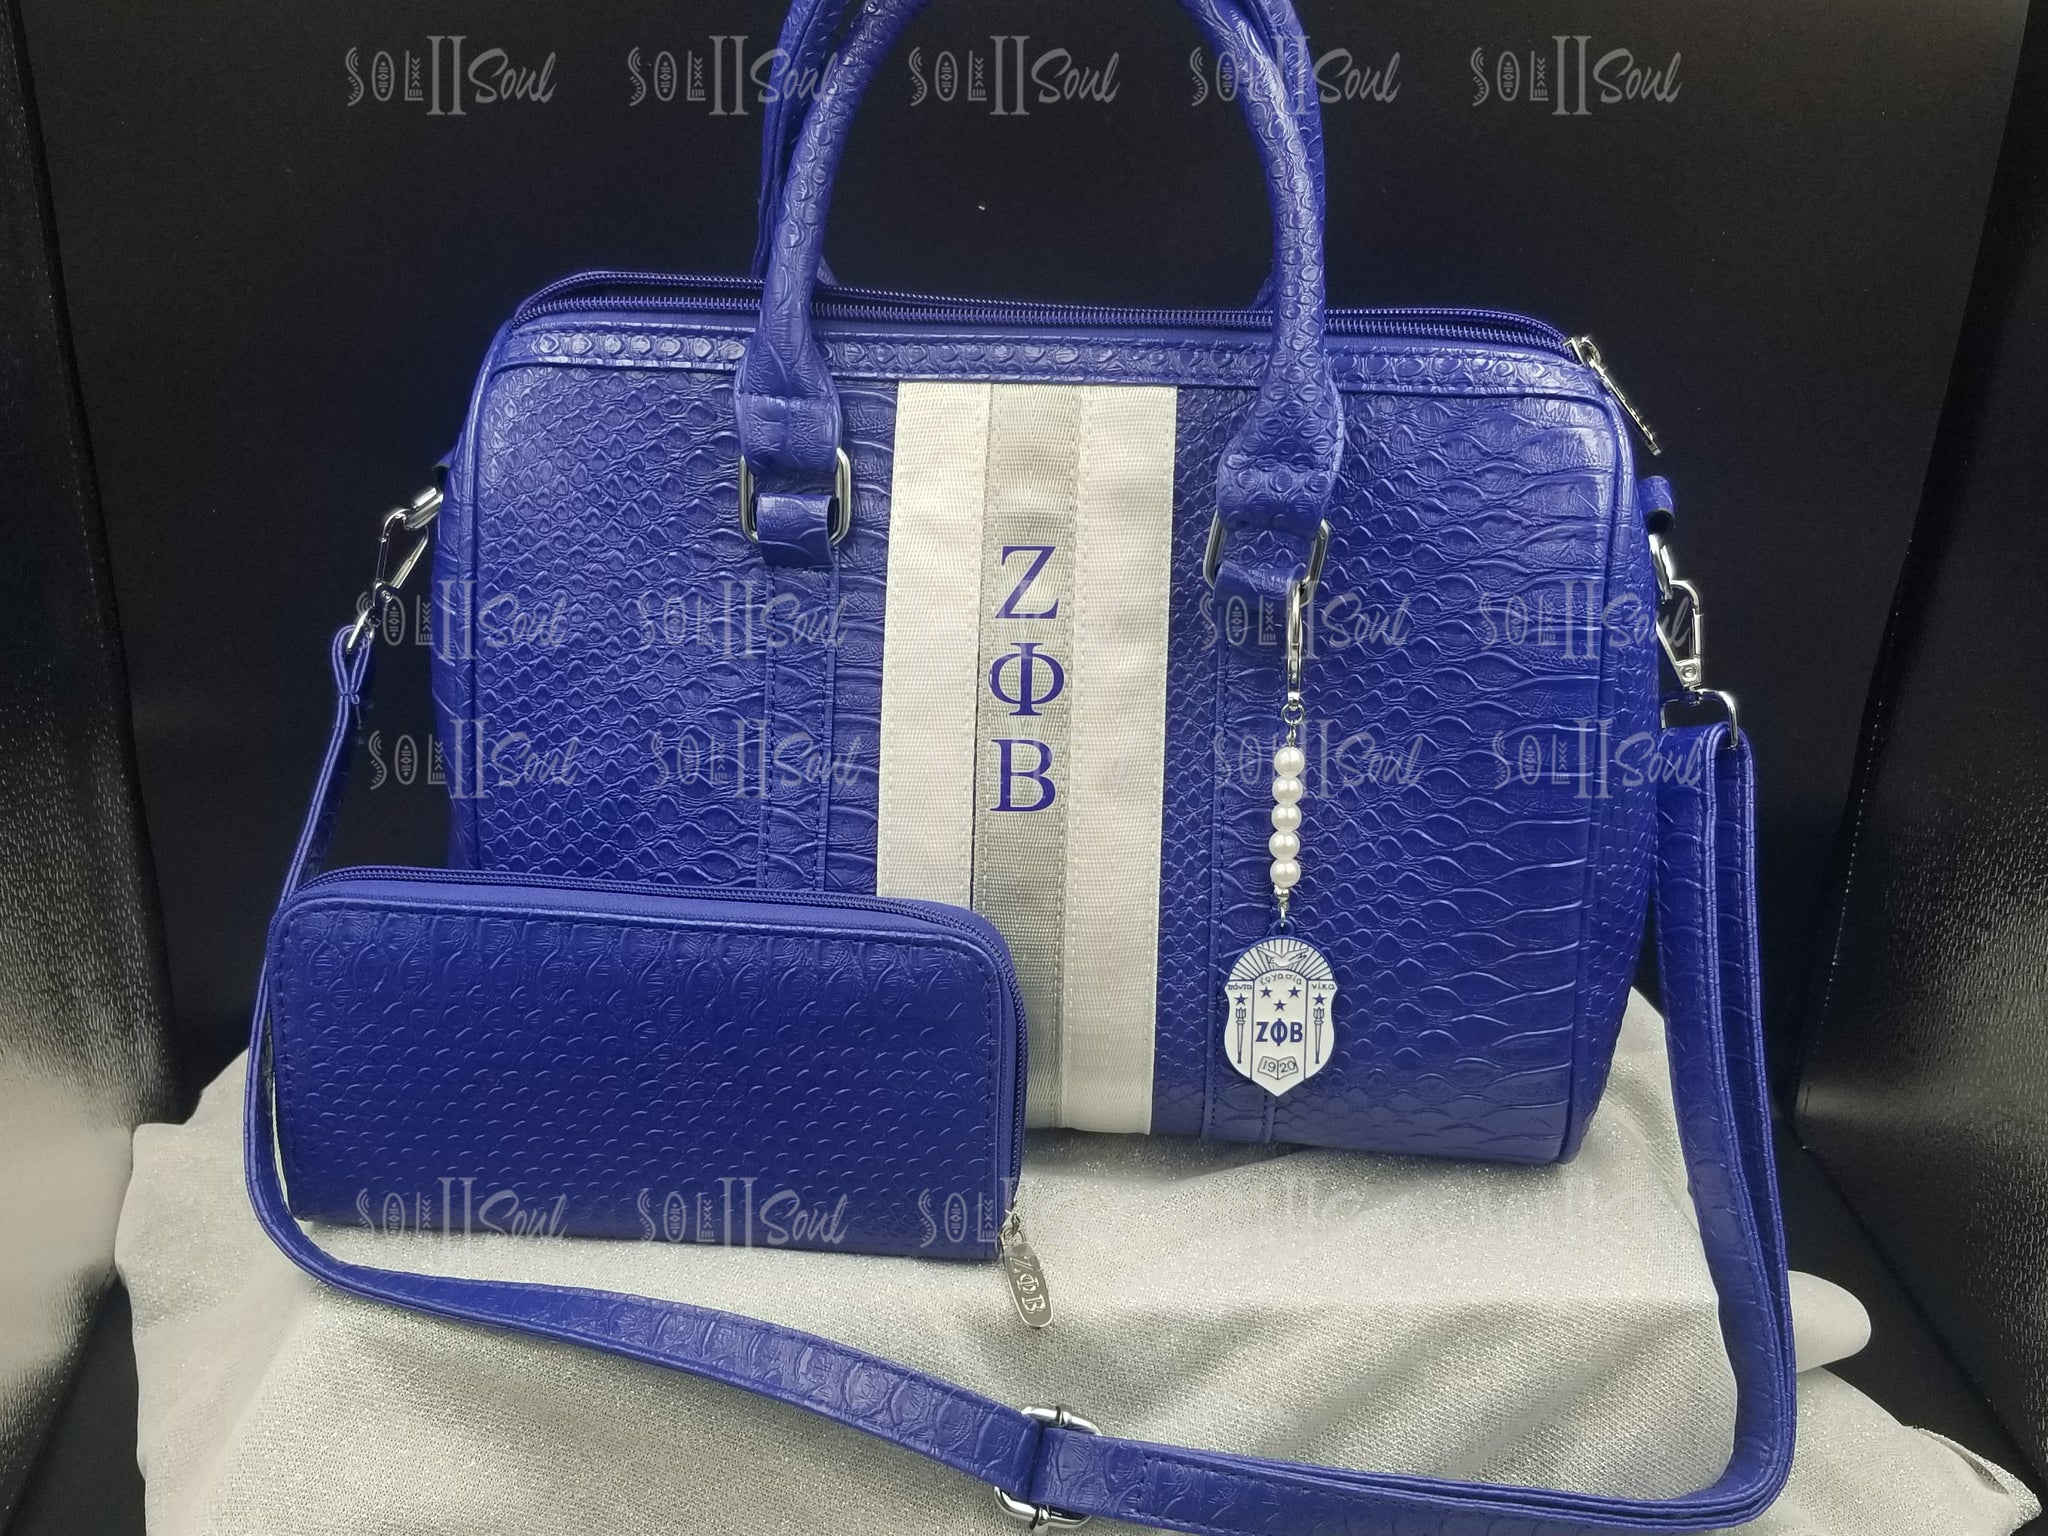 ΖΦΒ Zpeedy Bag and Wallet